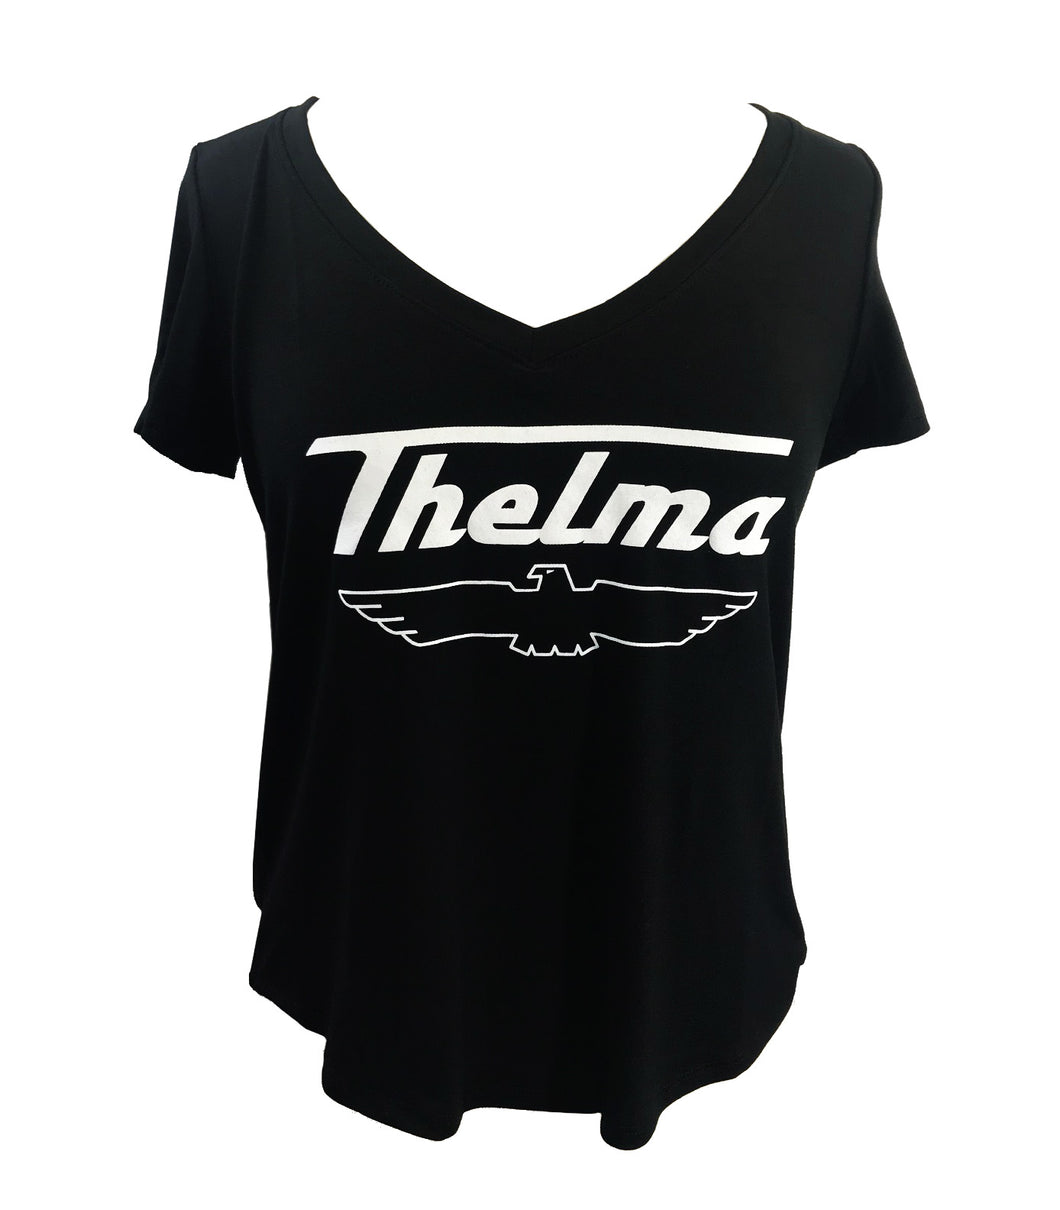 THELMA AND LOUISE SHORT SLEEVE V NECK THELMA - Trailsclothing.com